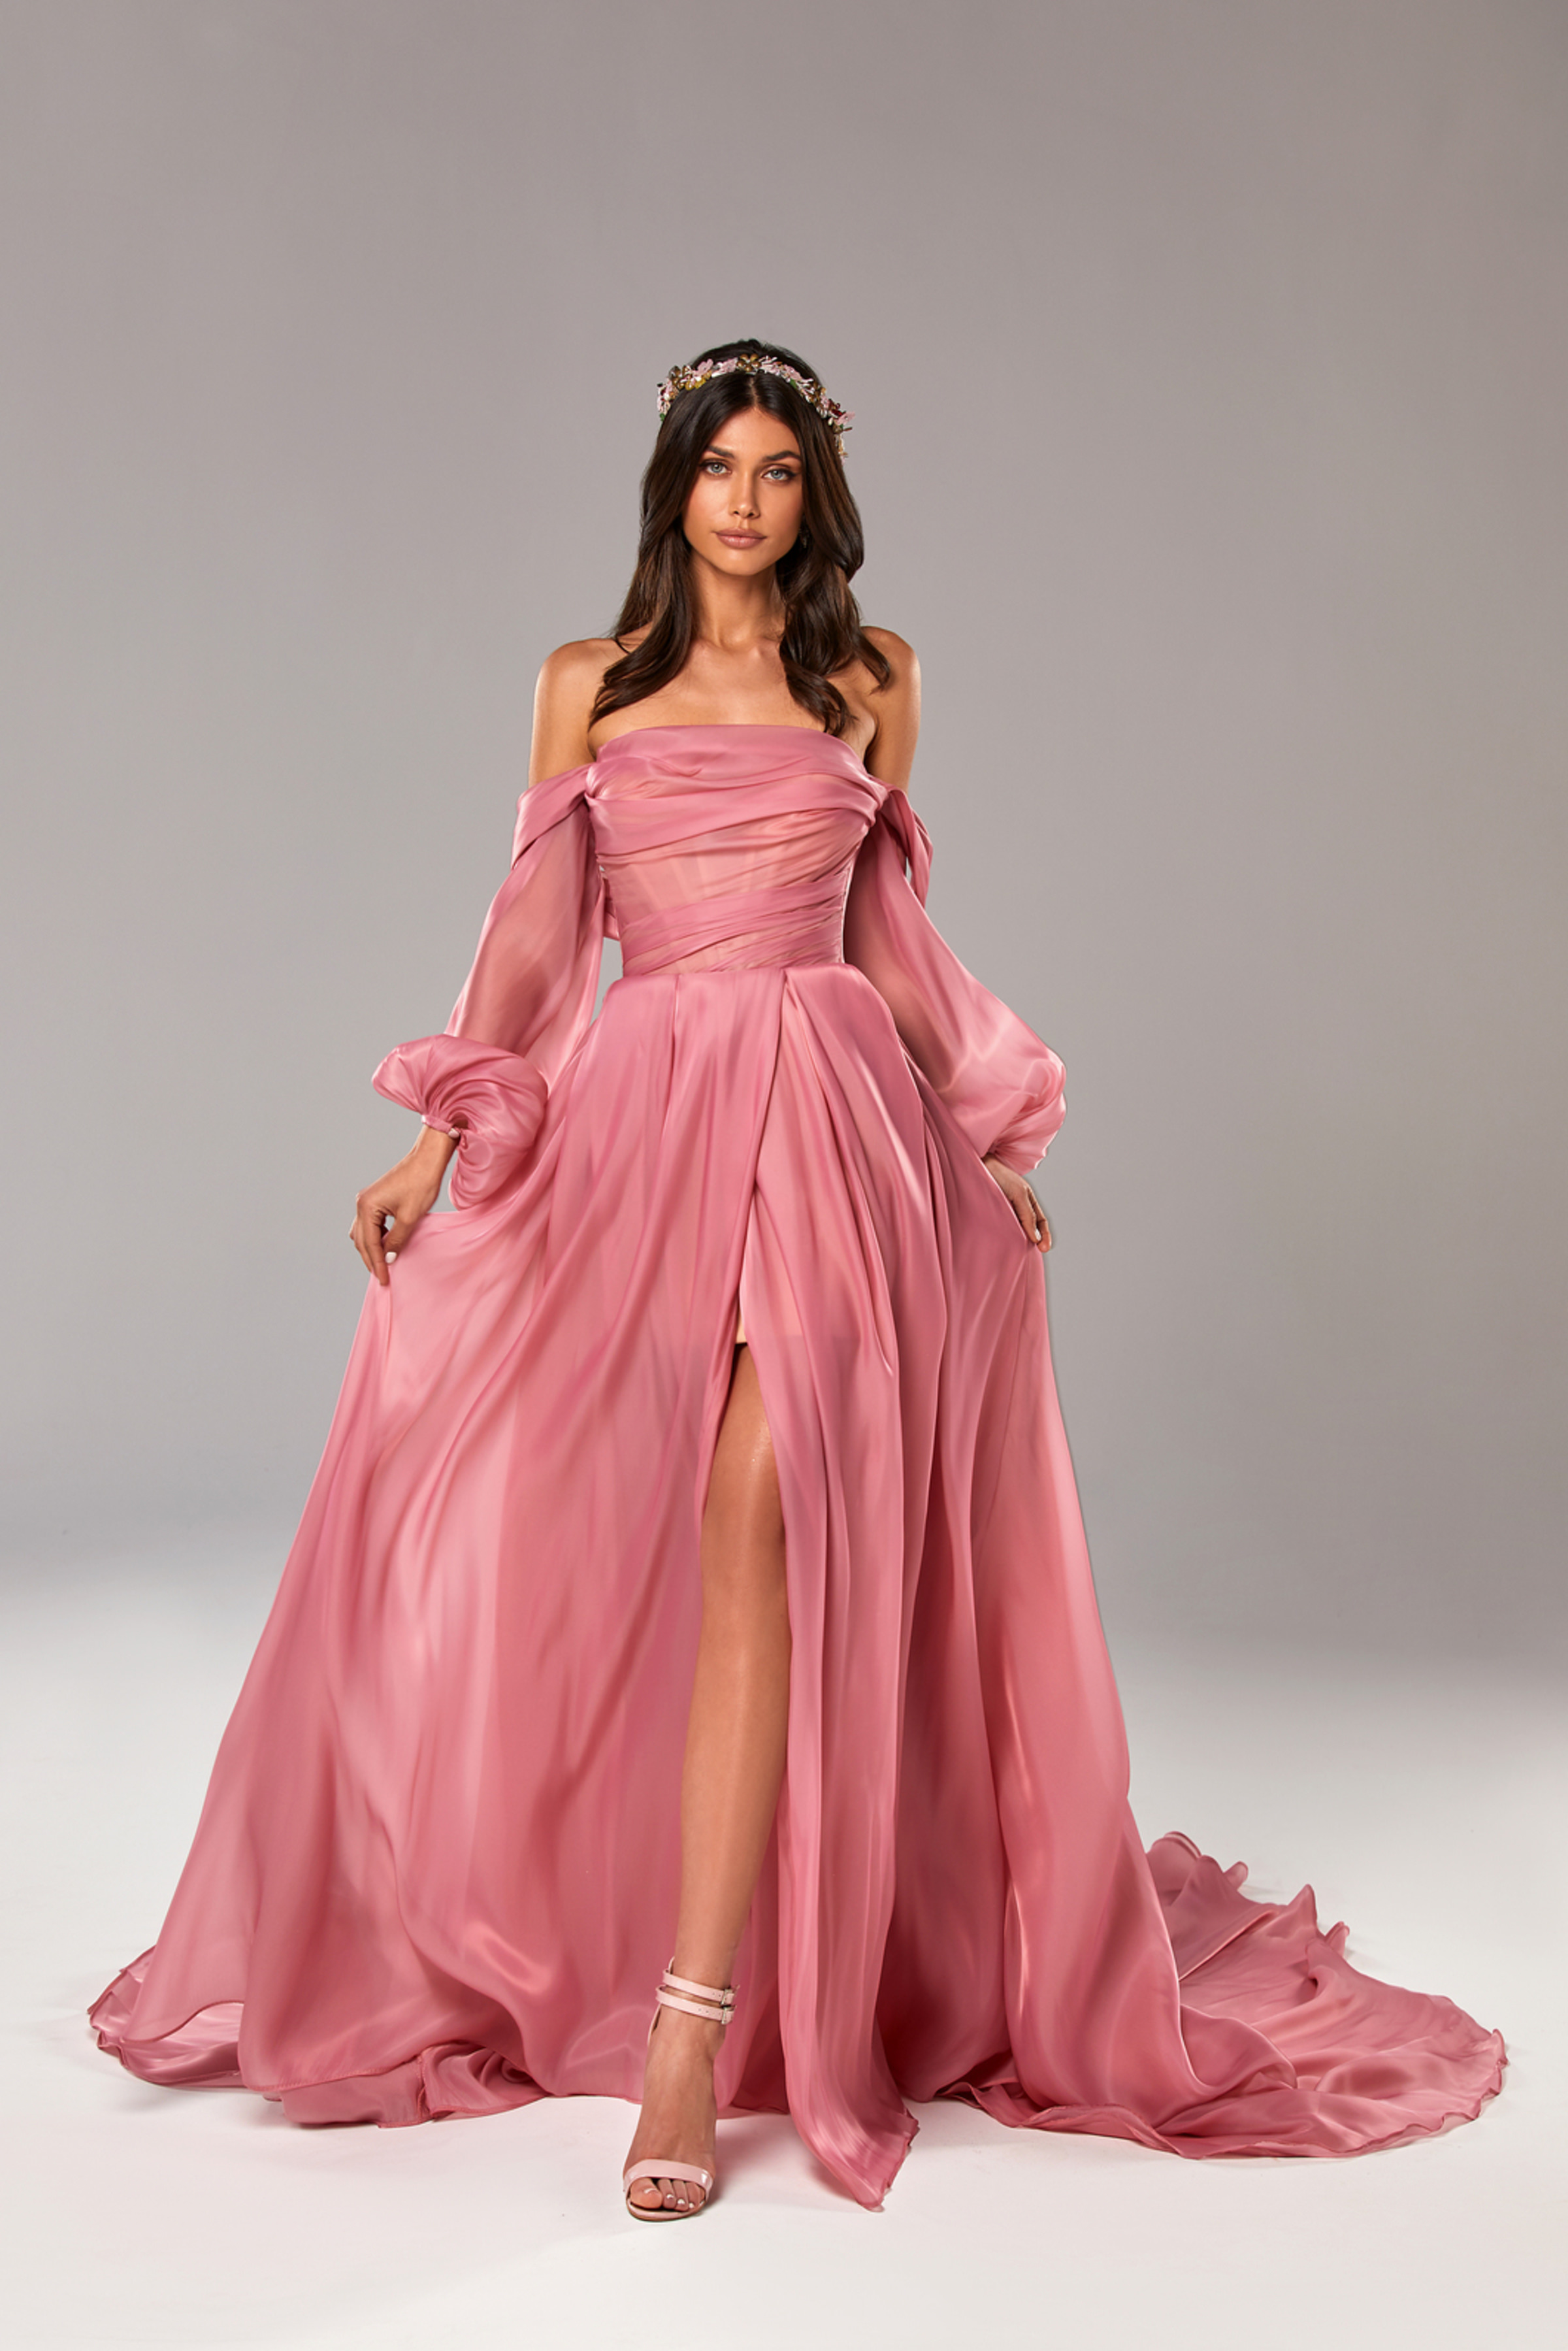 Evening Gown by Milla